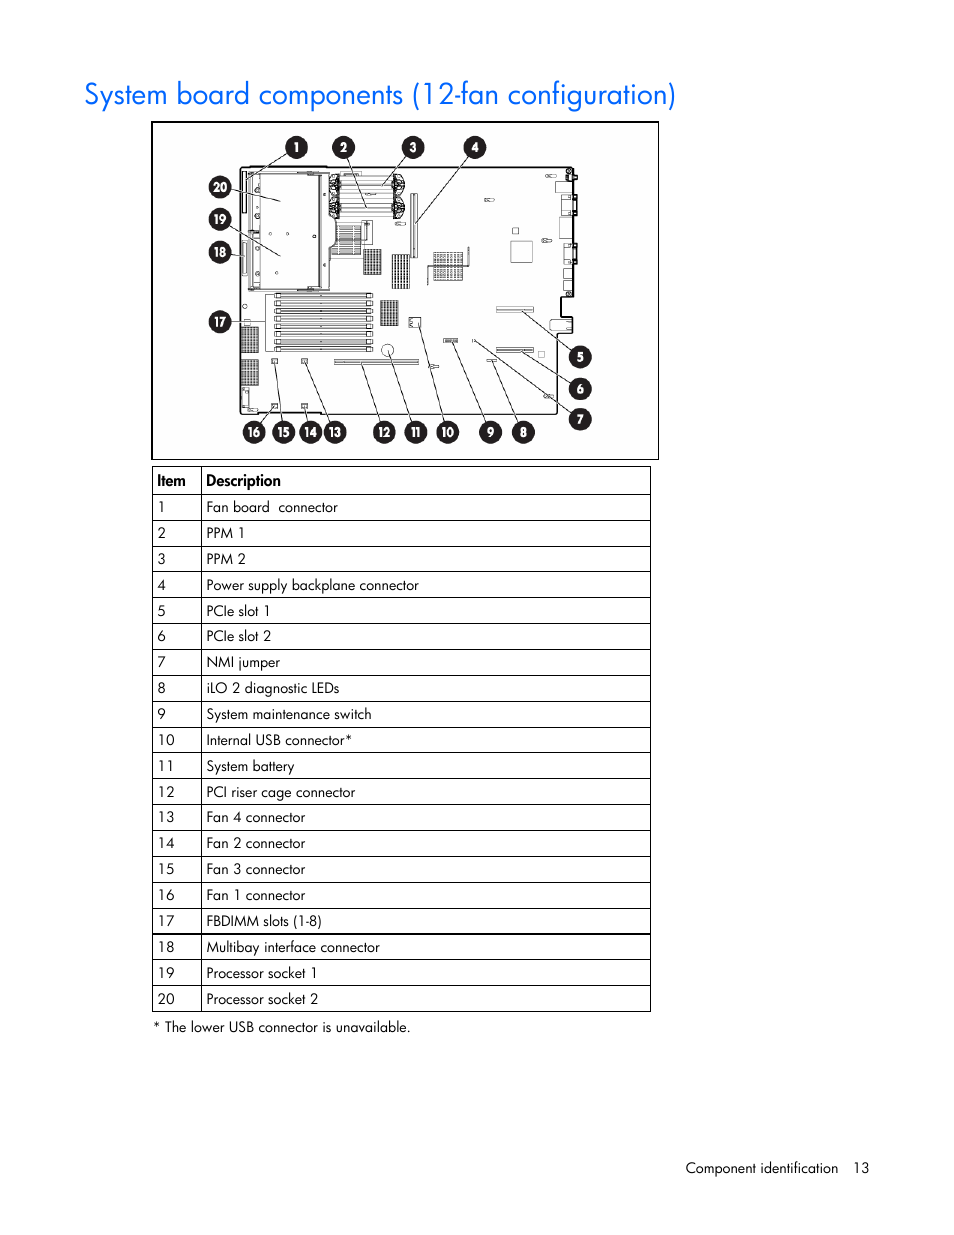 Hp Proliant Dl380 G5 Motherboard Diagram - All Wiring Diagram